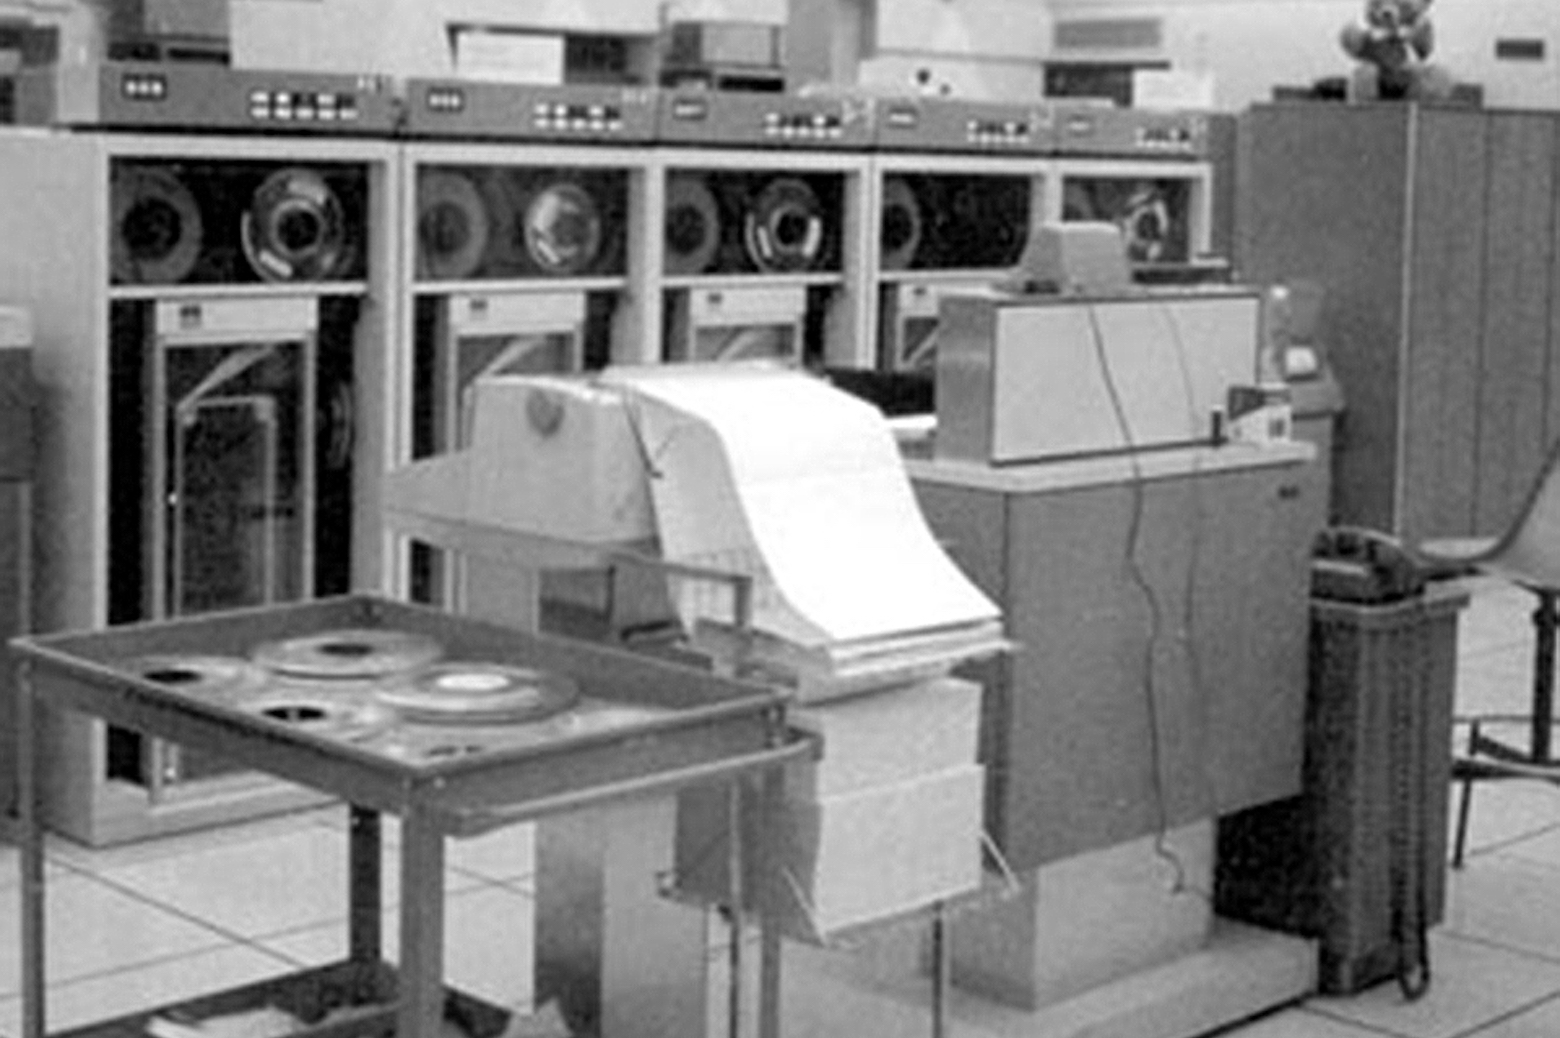 IBM Model 1410 at the University of Michigan Computing Center (circa 1960s)